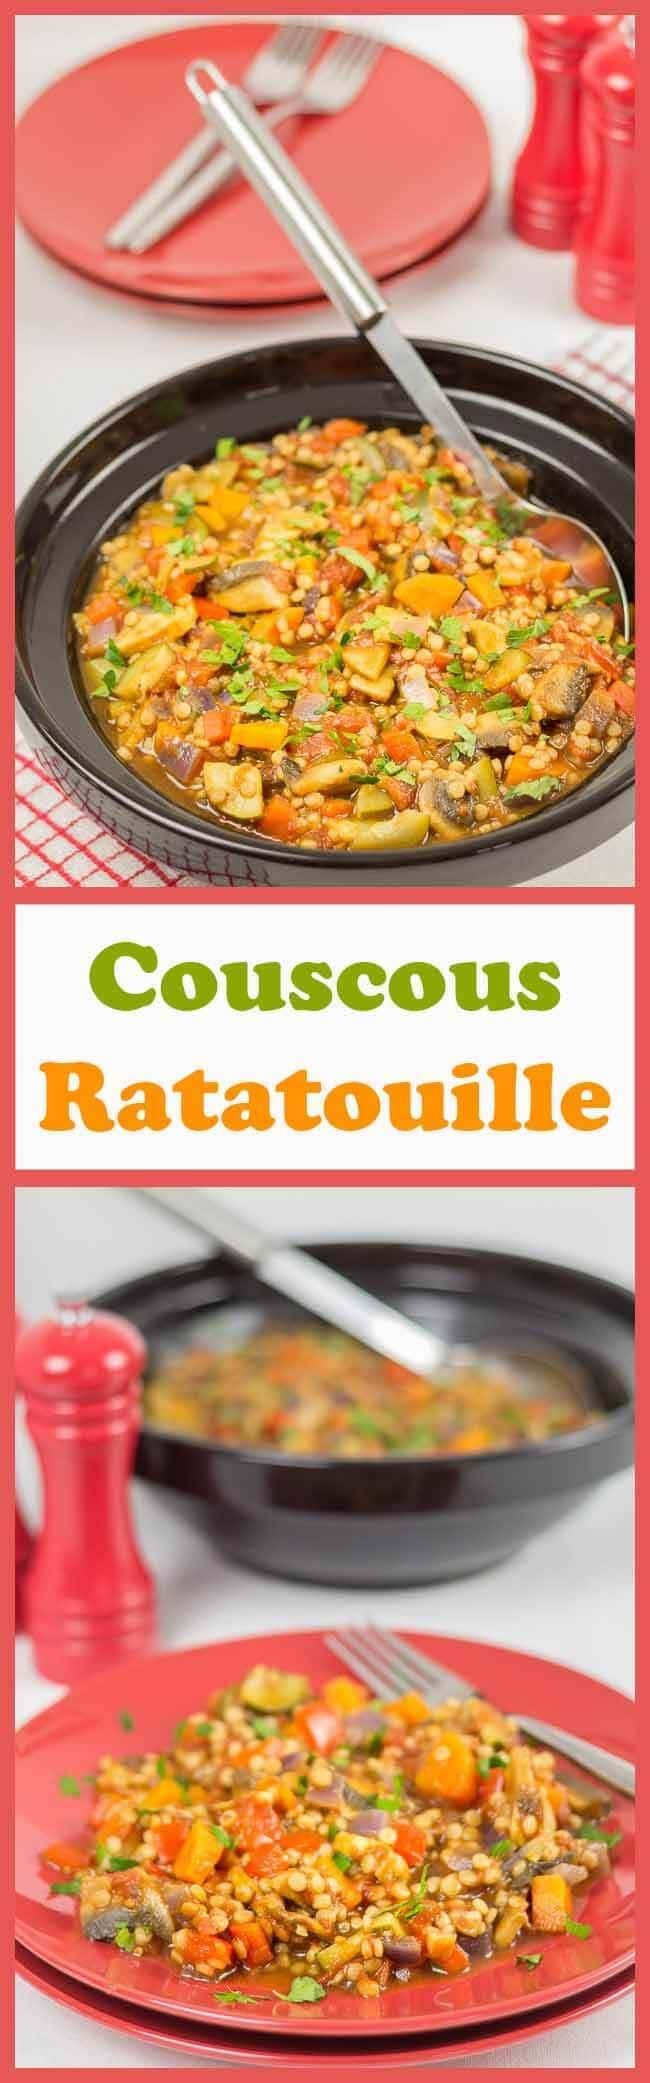 This couscous ratatouille is a delicious vegan medley of vegetables combined with giant couscous, making a perfectly filling quick healthy meal. Ideal as a family dinner and ideal for freezing too, you can be sure you're getting a huge amount of your daily recommended vitamin intake from this healthy recipe.